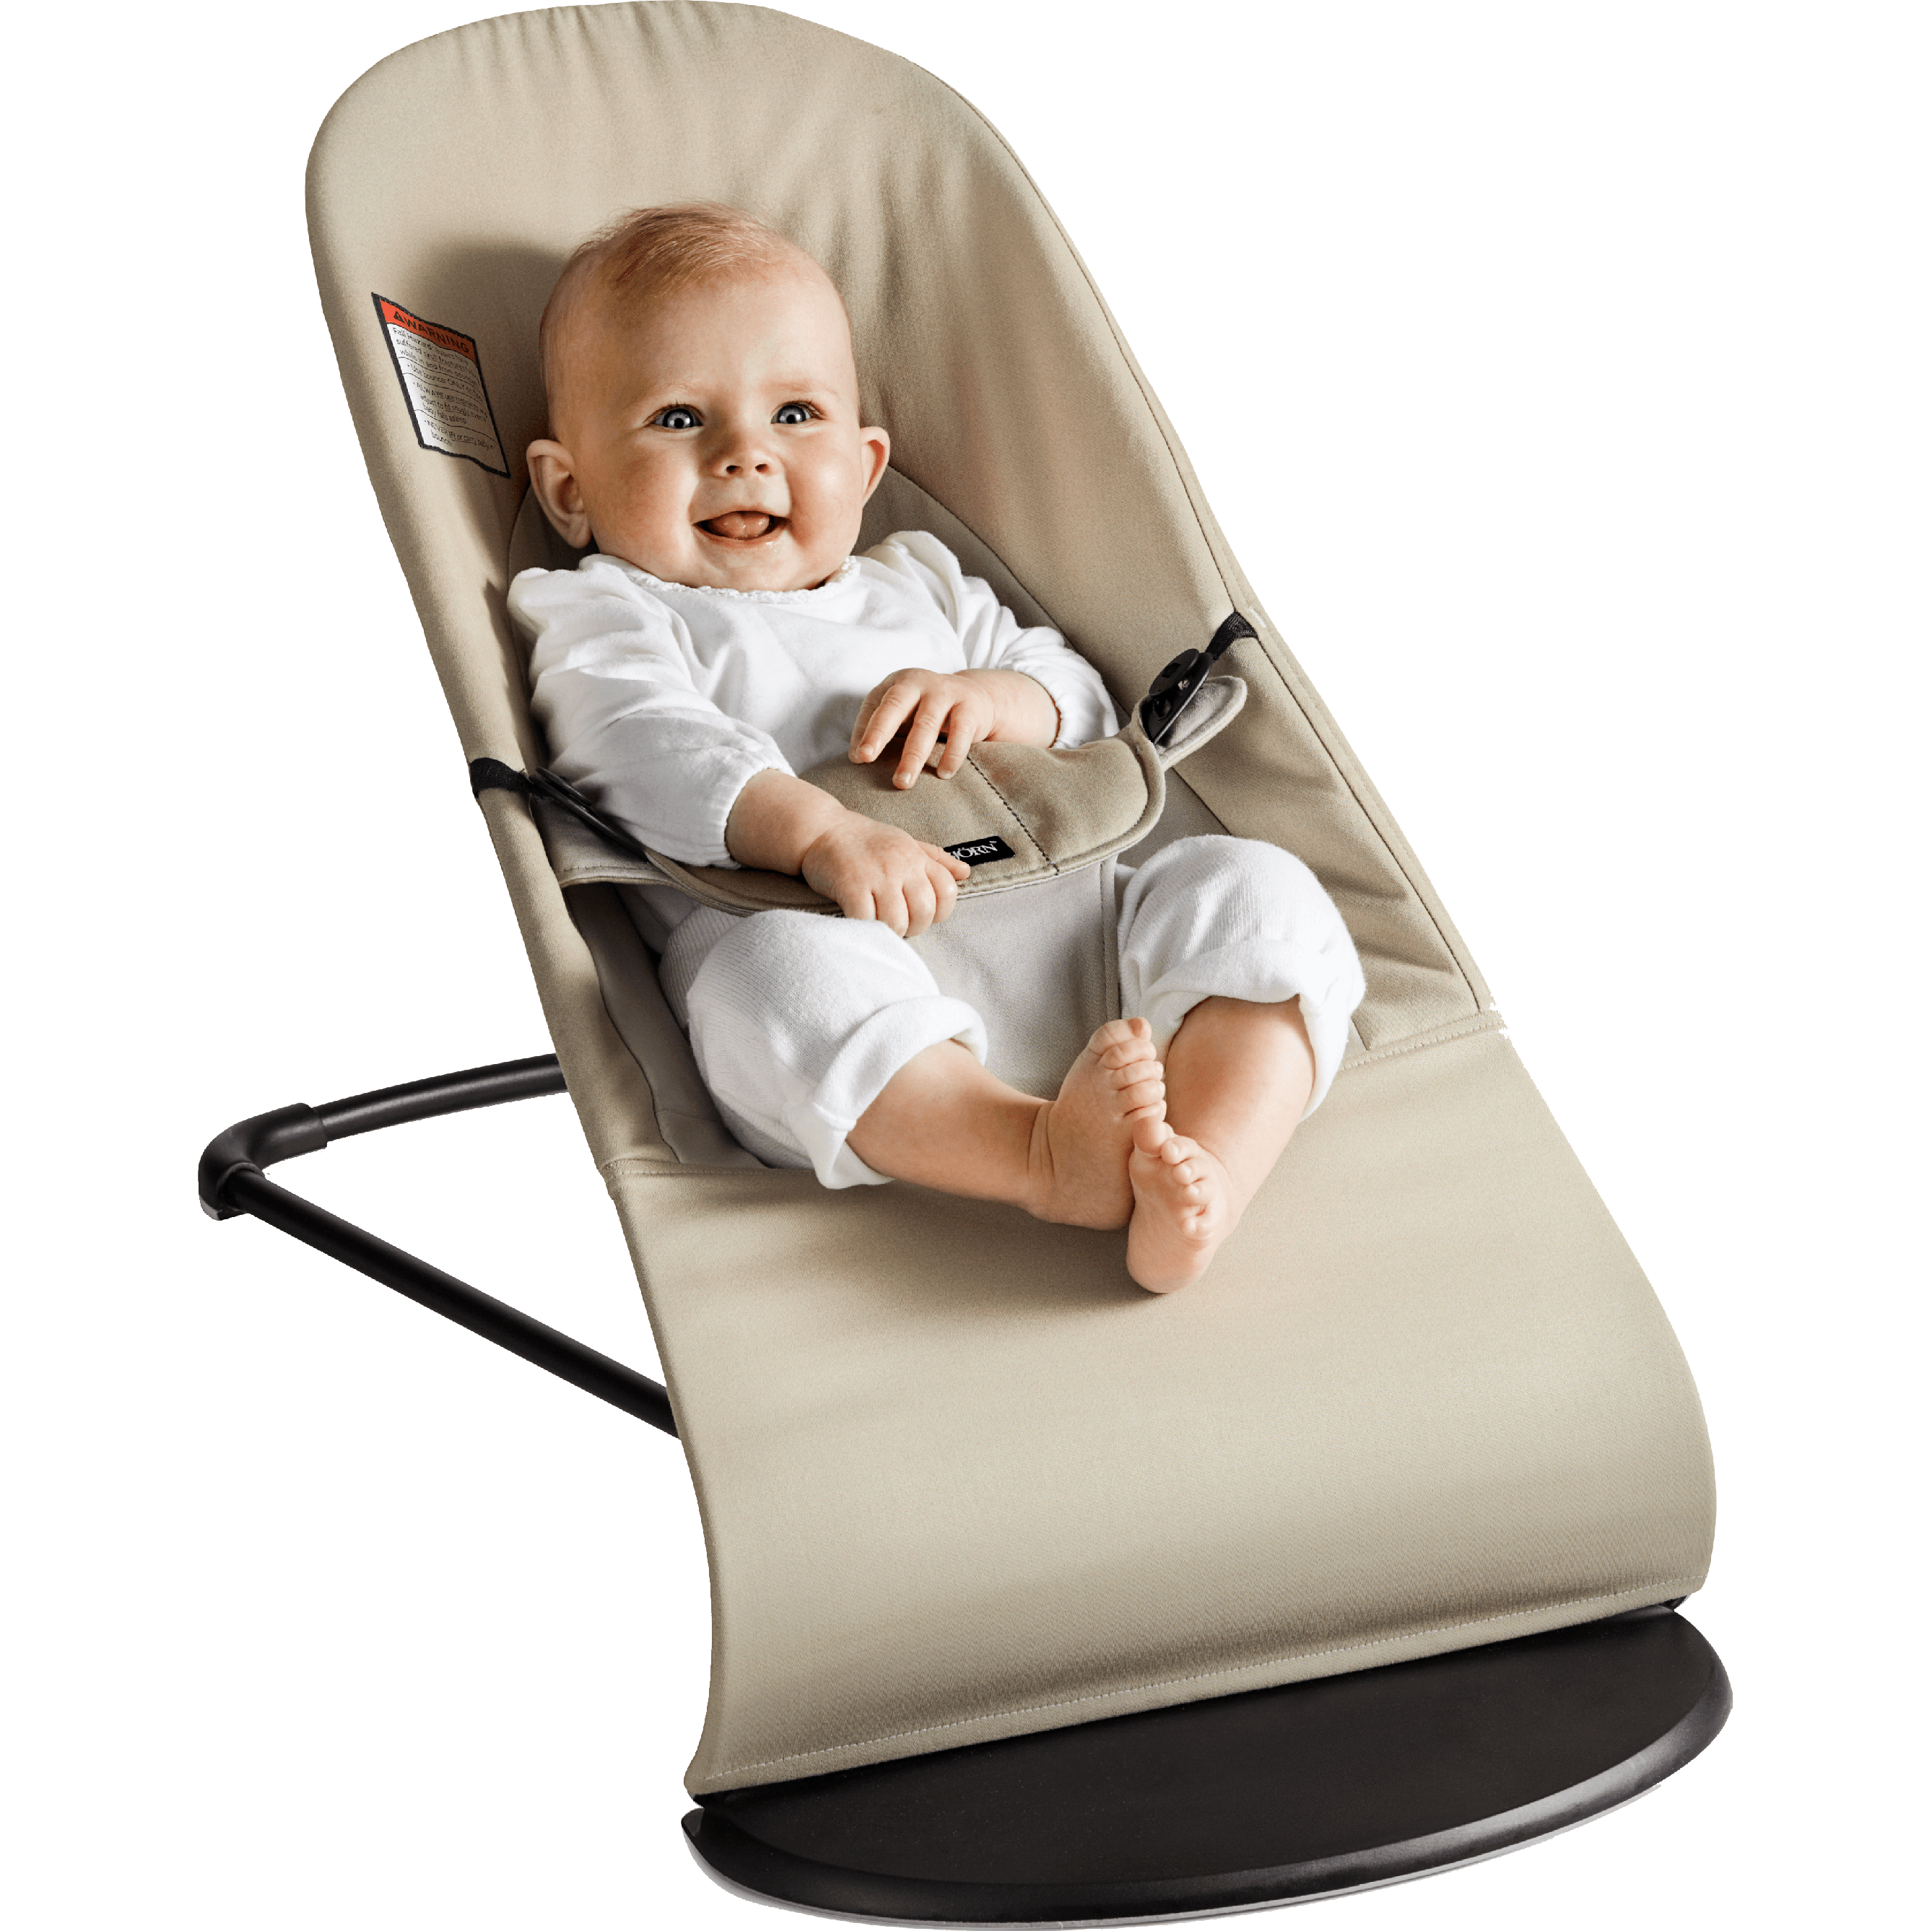 Toddler Soft Chair Balance Soft An Ergonomic Baby Bouncer BabybjÖrn